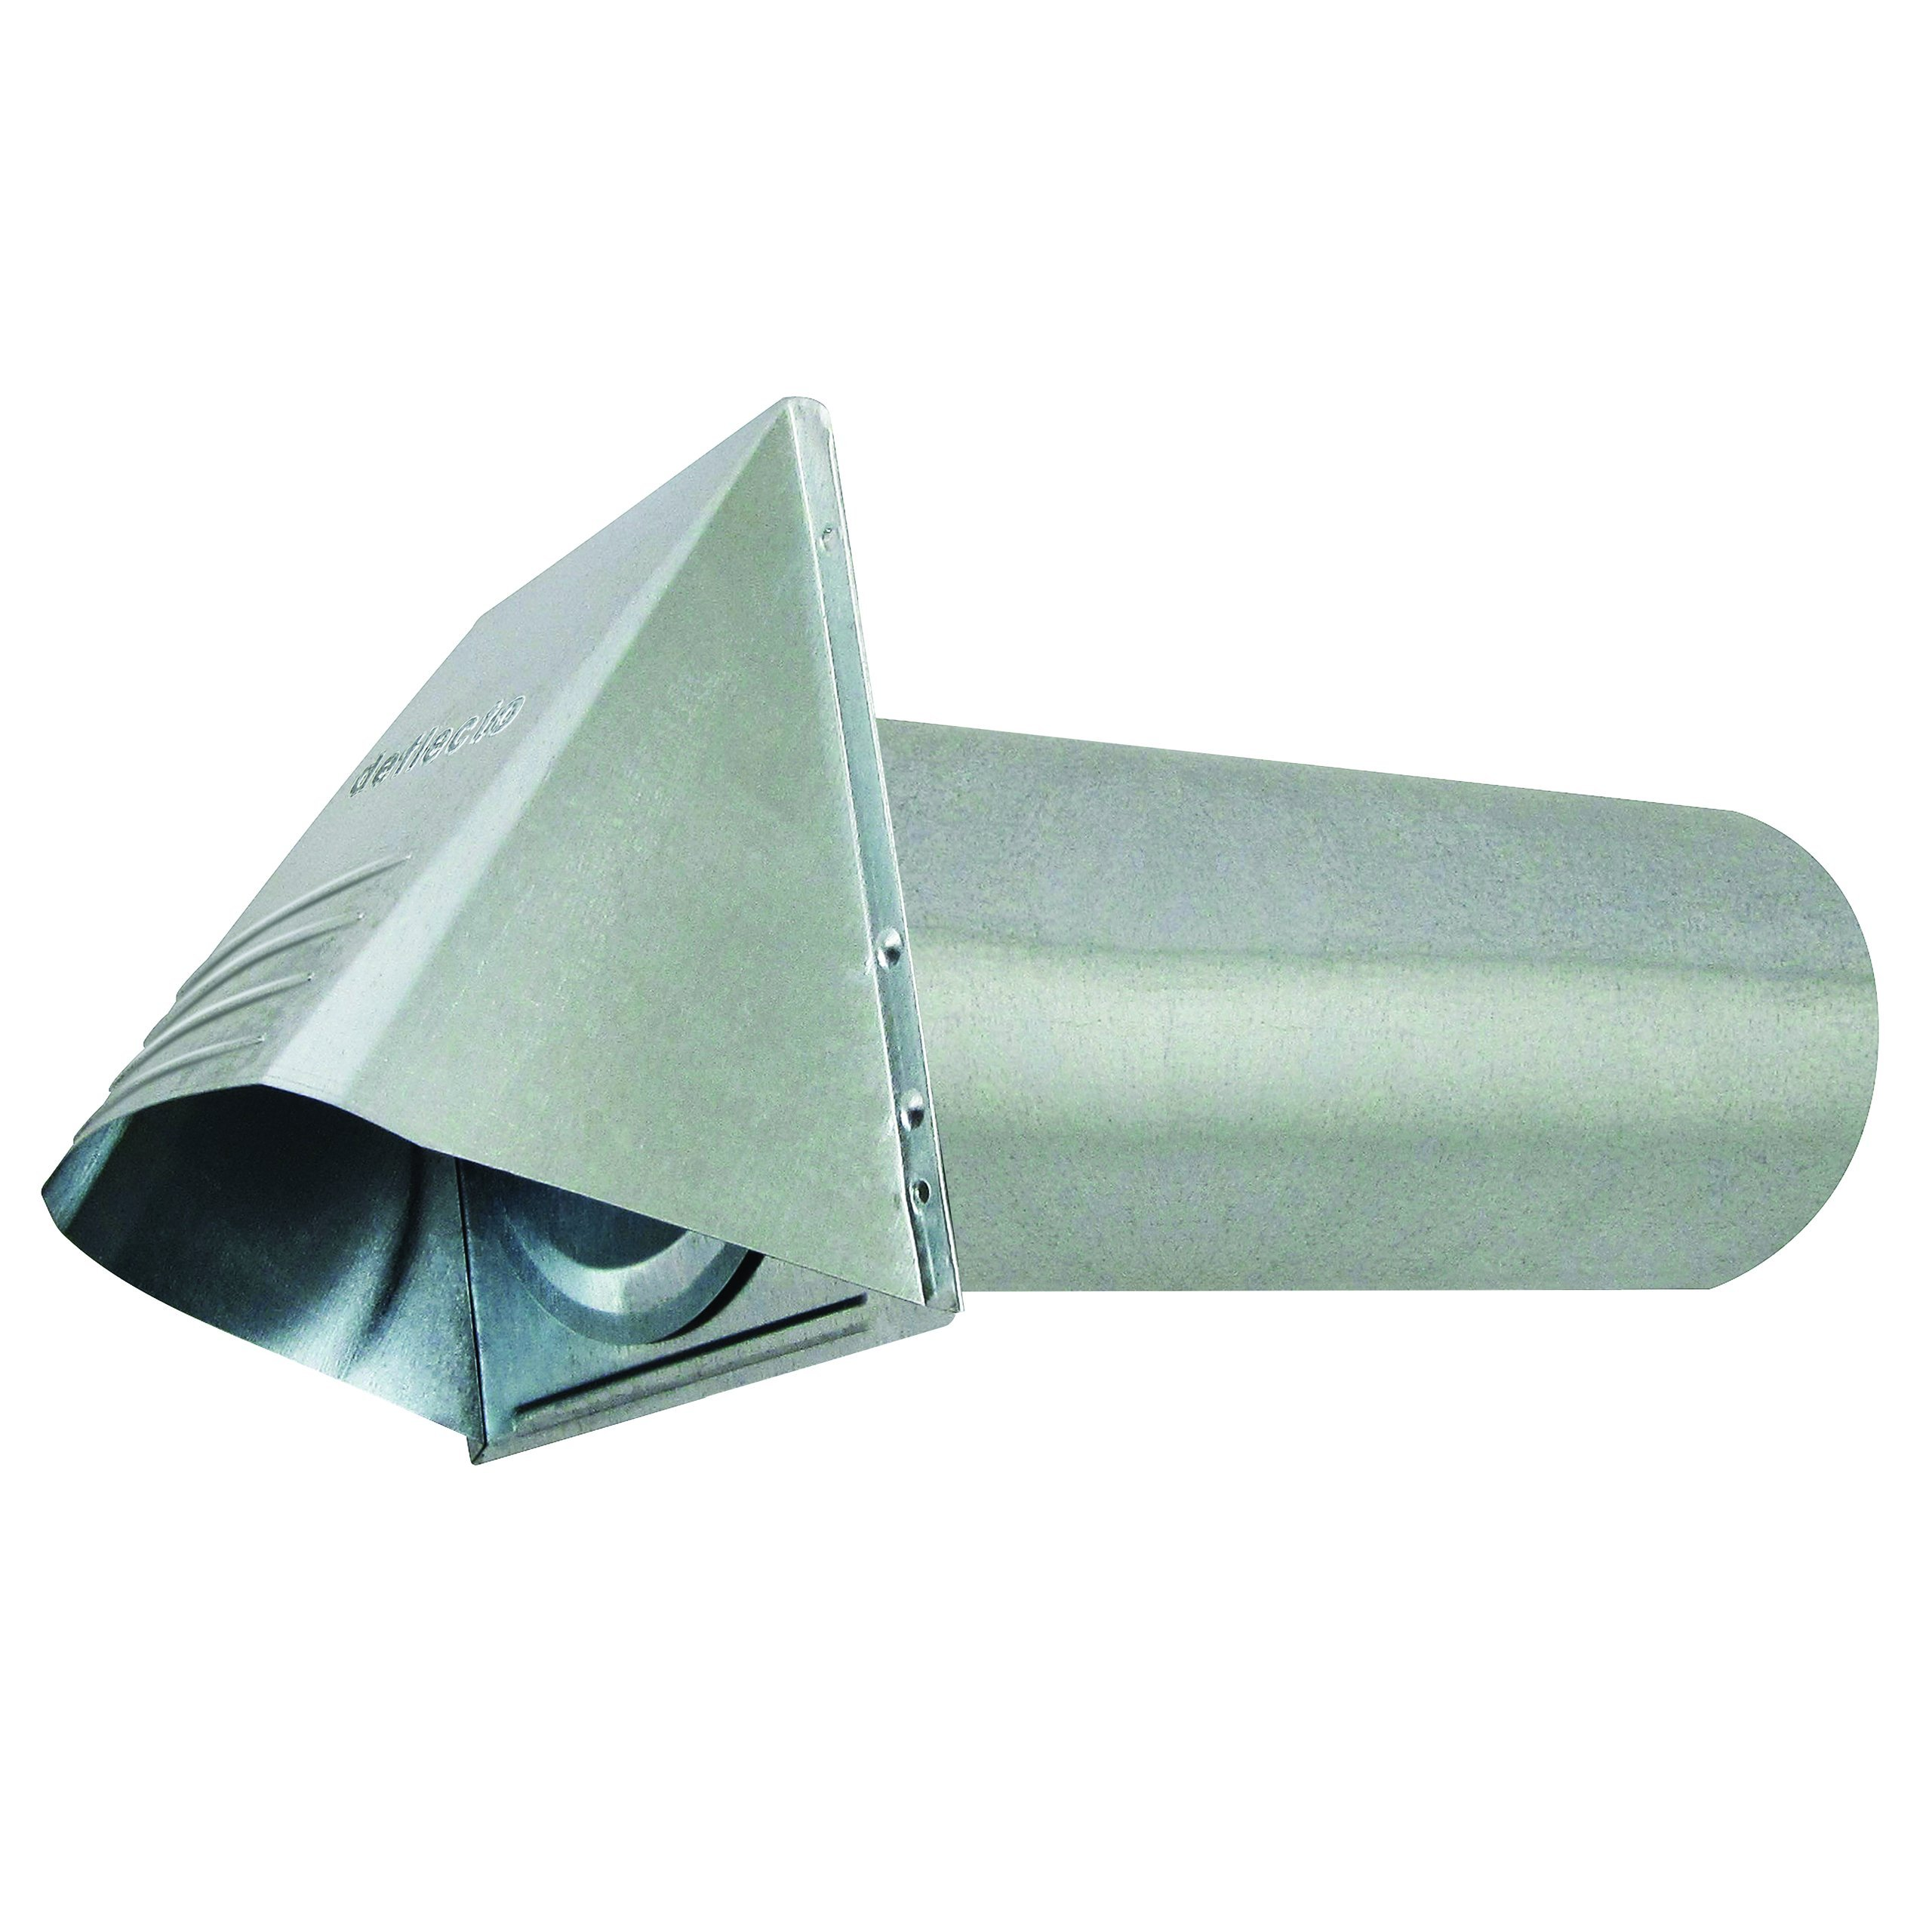 4 Metal Dryer Vent Wide Mouth Galvanized Vent Hood